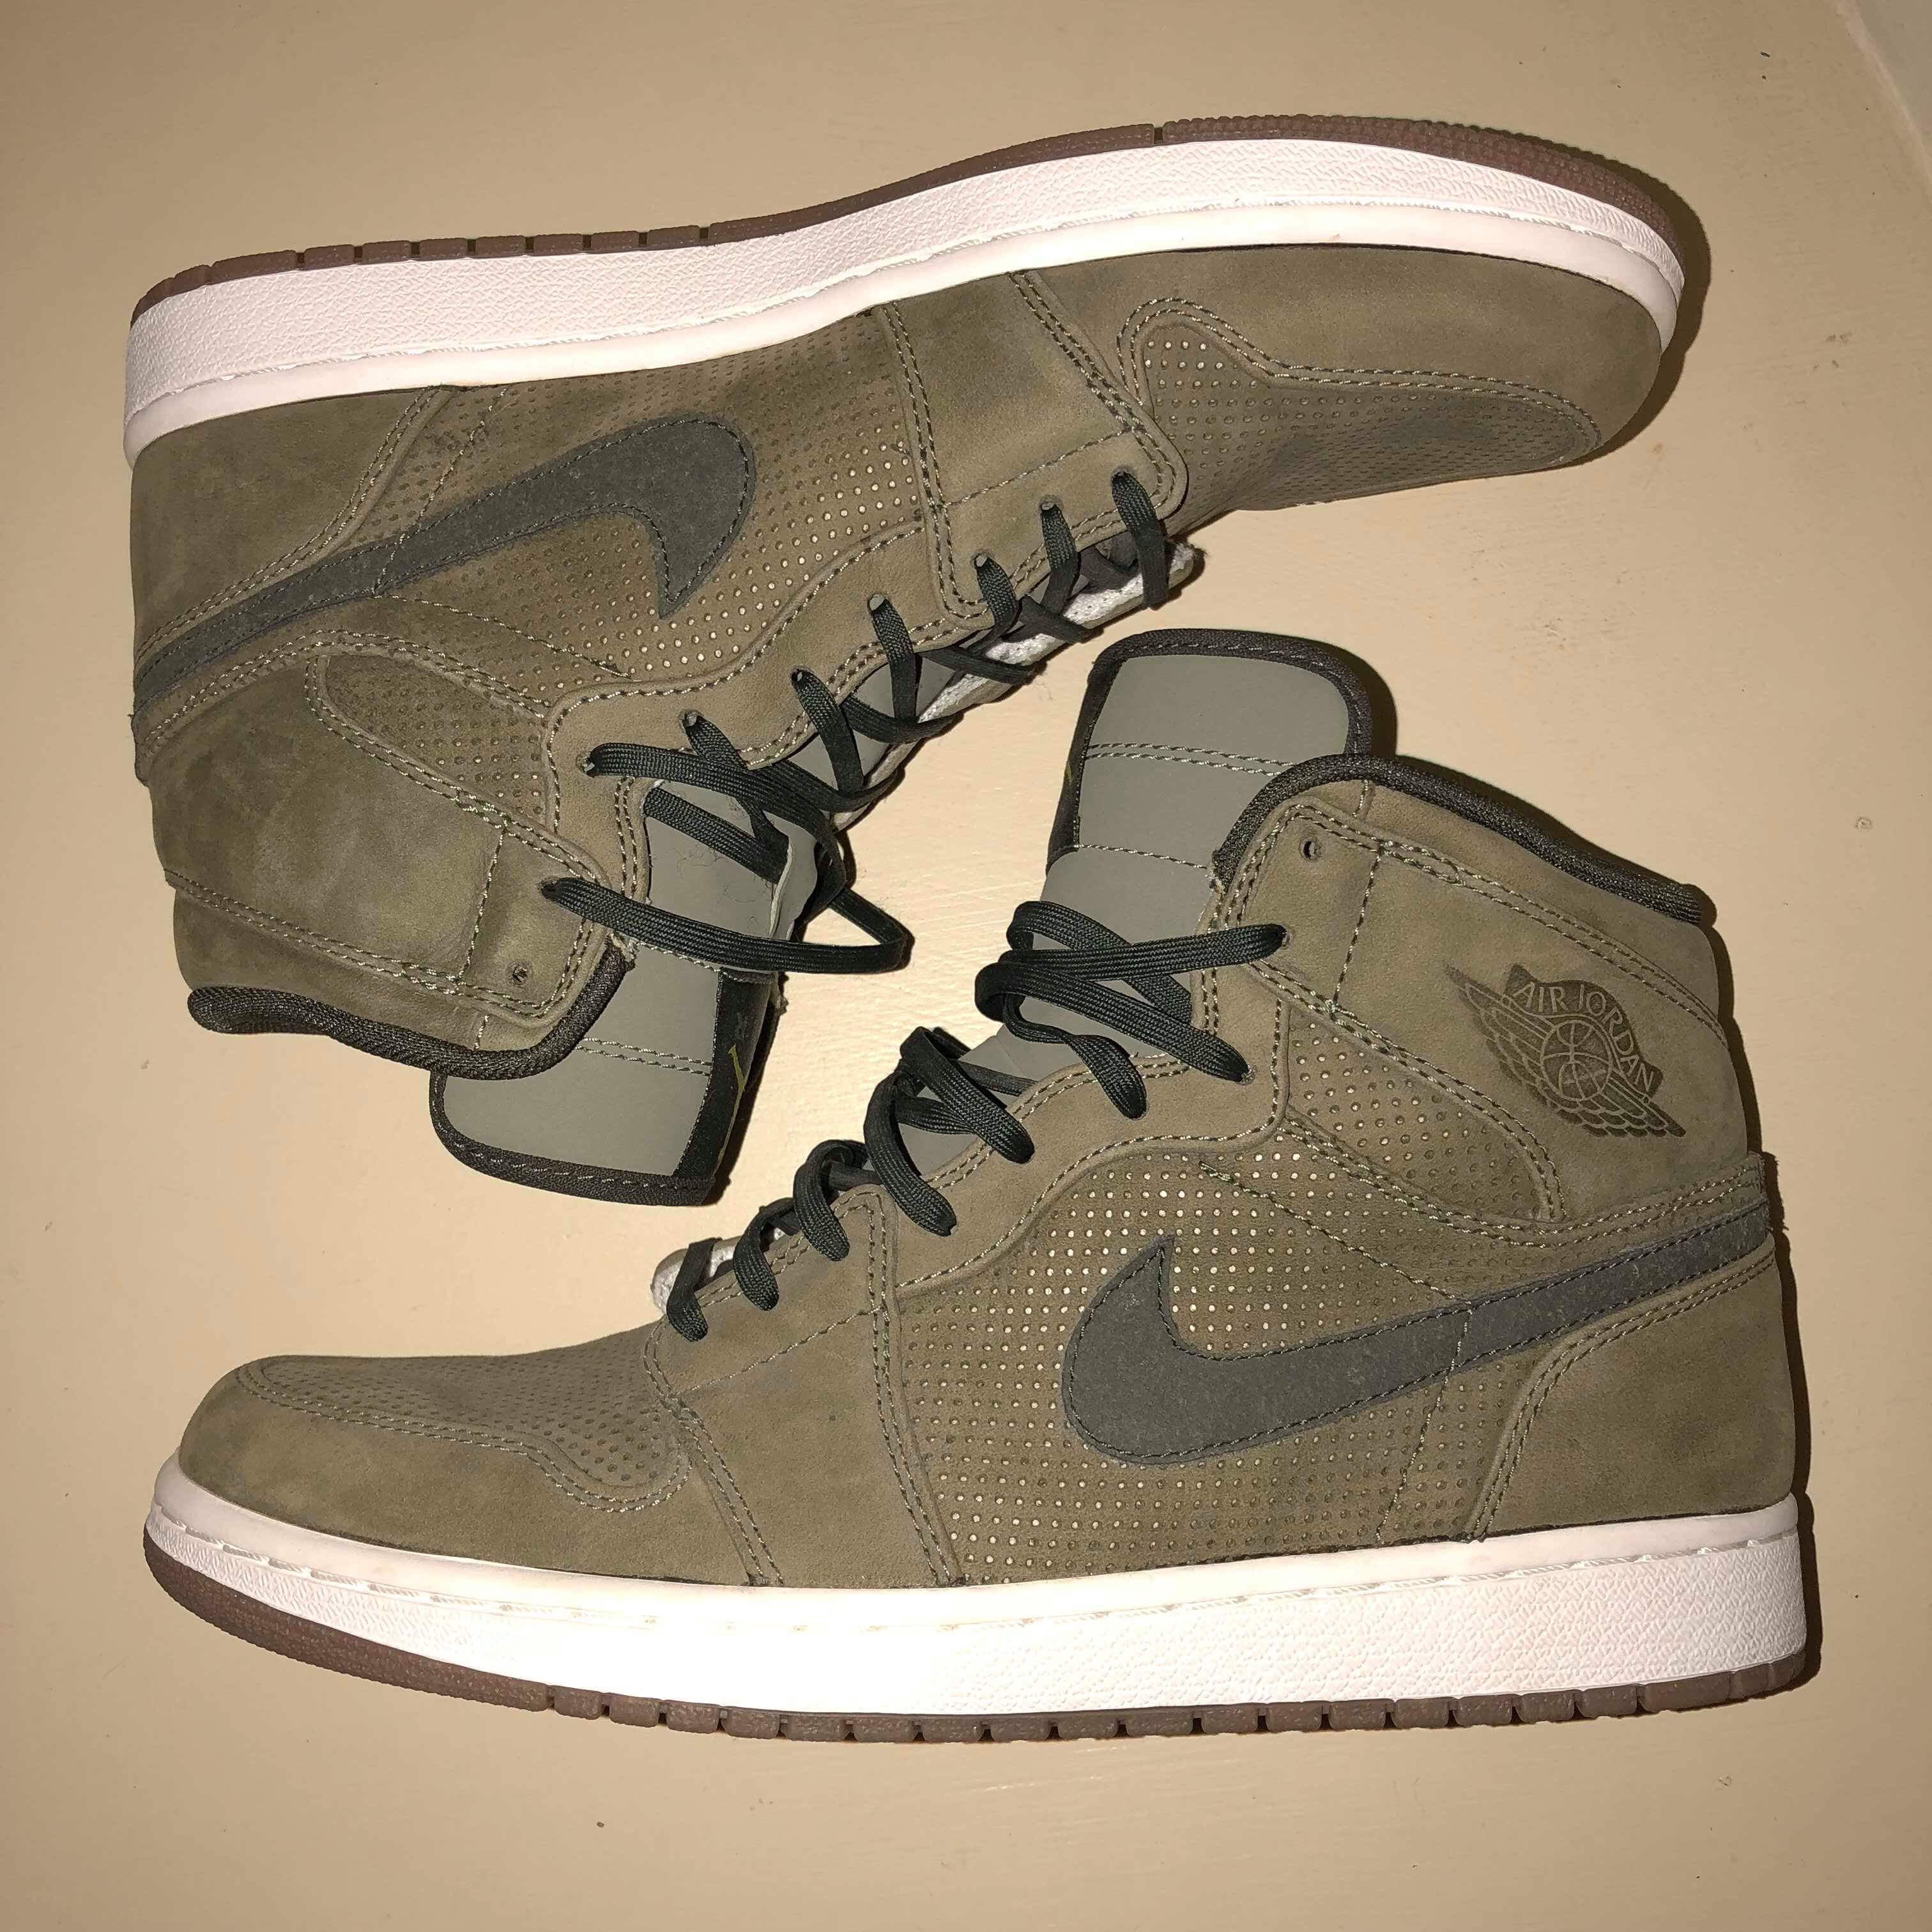 sports shoes 8ede6 99202 Nike Air Jordan 1 retro olive green Rare release... - Depop